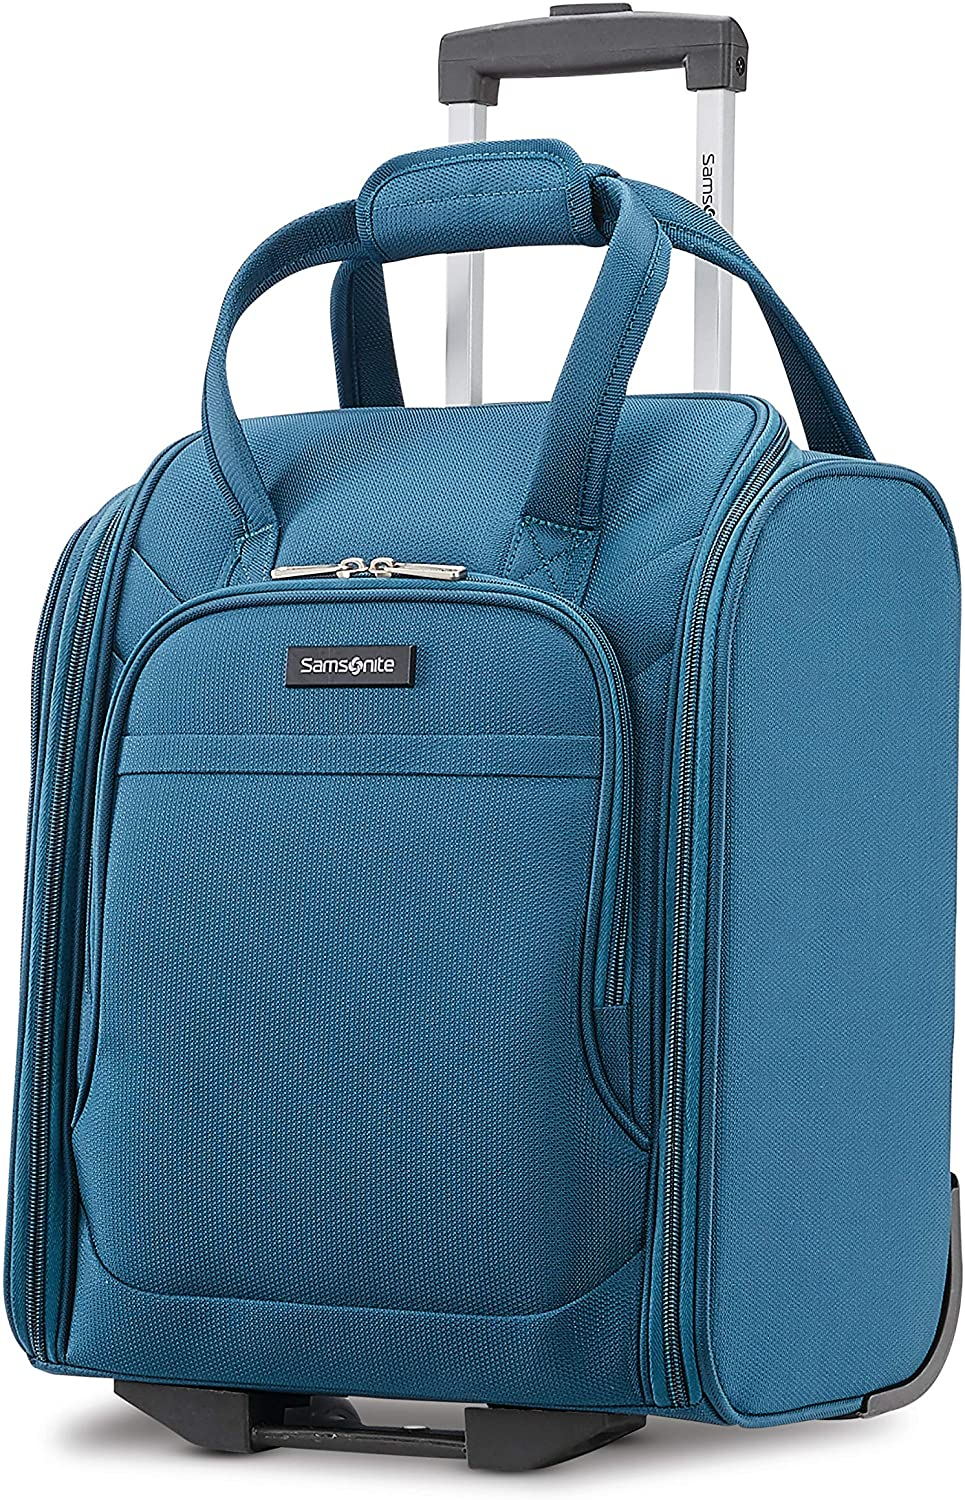 Samsonite Ascella X Softside Expandable Luggage with Spinner Wheels, Teal, Underseater